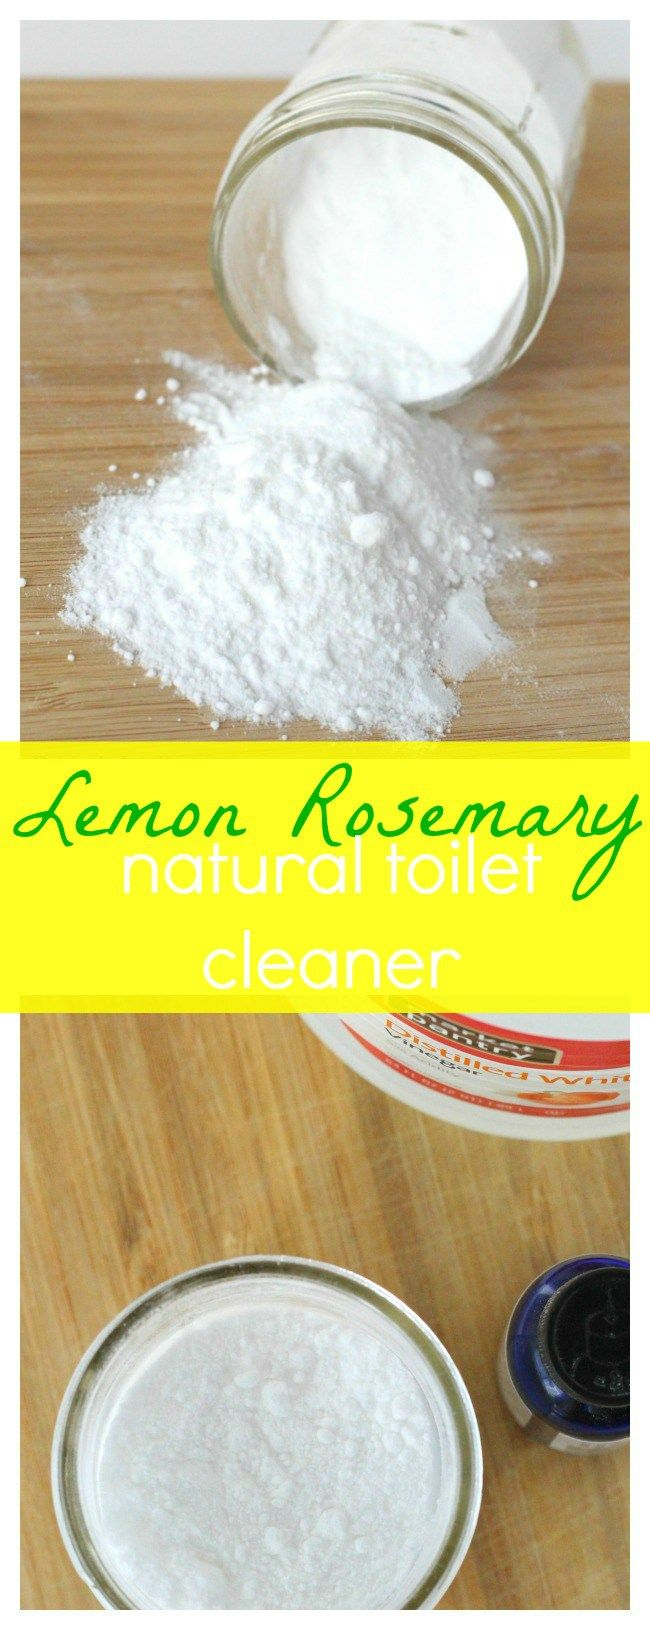 Natural Toilet Bowl Cleaner + 6 Bathroom Toilet Cleaning Tips  http://raisingwhasians.com/2016/03/natural-toilet-cleaner-bathroom-tips.html